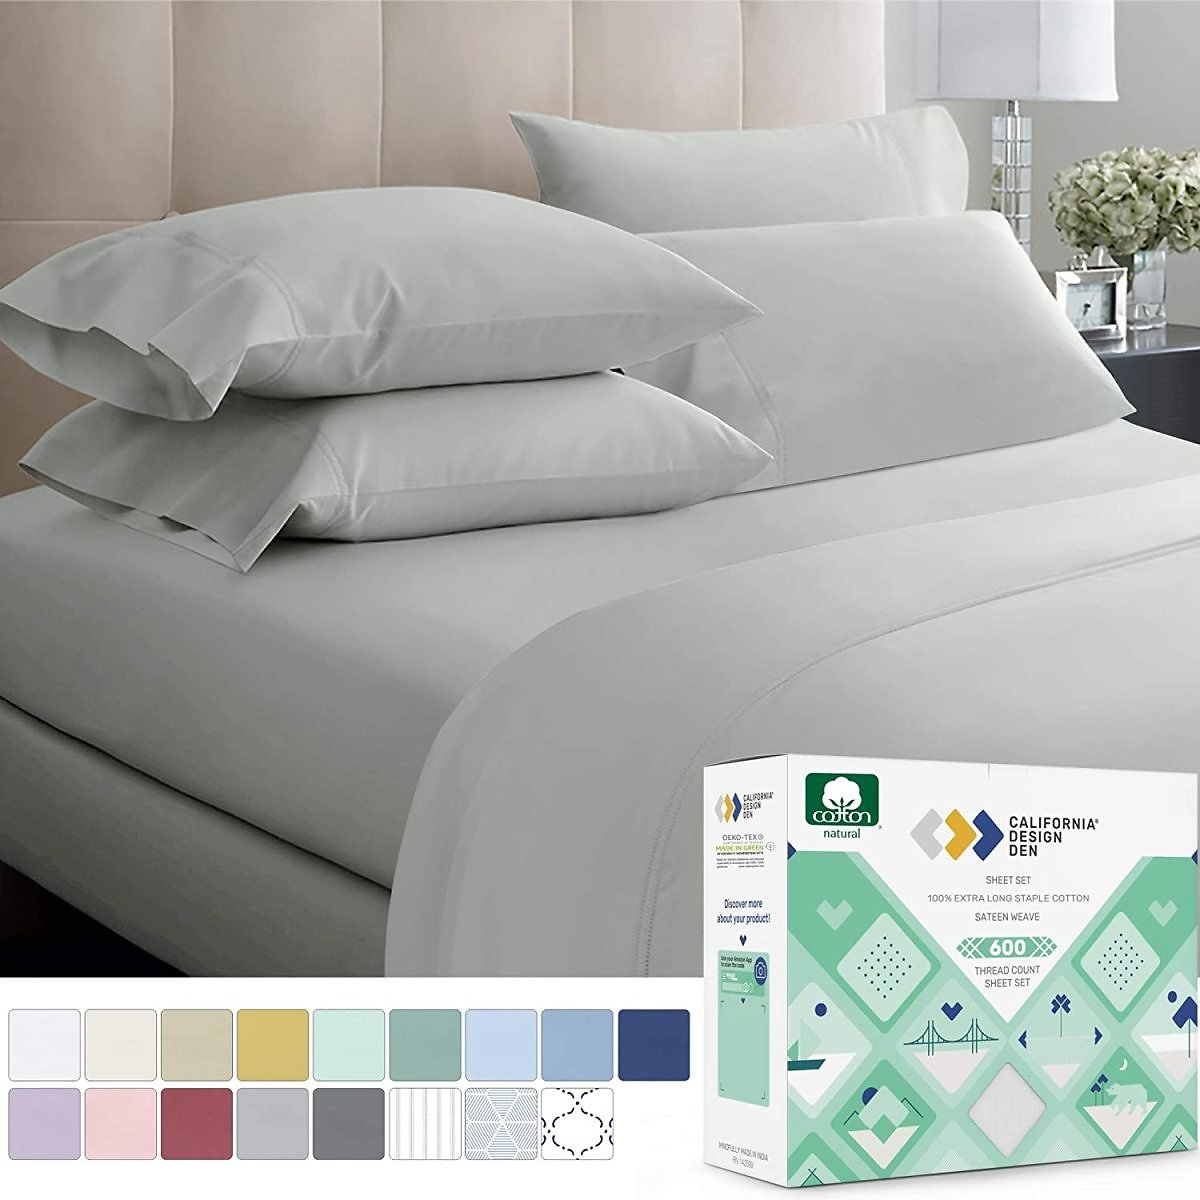 California Design Cotton Sheets (Fits Mattress 16'' Deep Pocket, Sateen Weave, Soft Cotton 4 Piece Bed Sheets Set